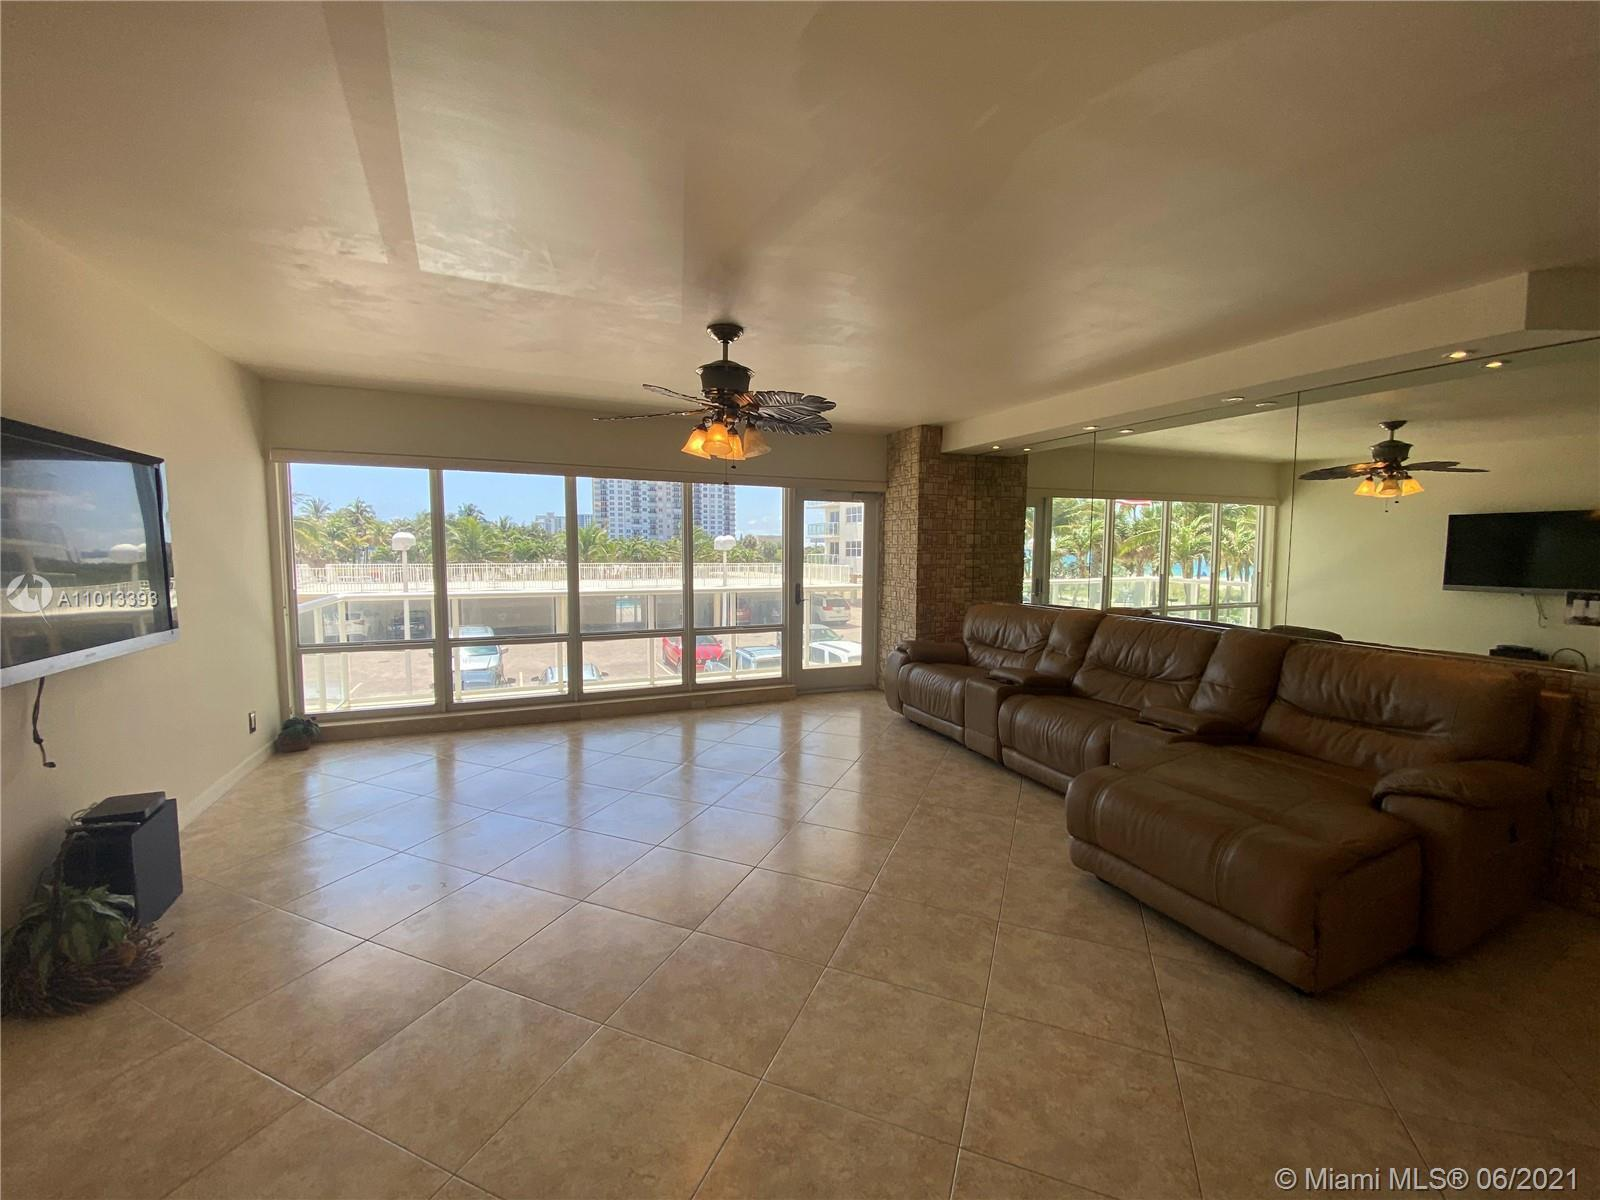 Own your own slice of paradise with this spacious 3 bedroom, 2/1 bath condo on the most desirable se